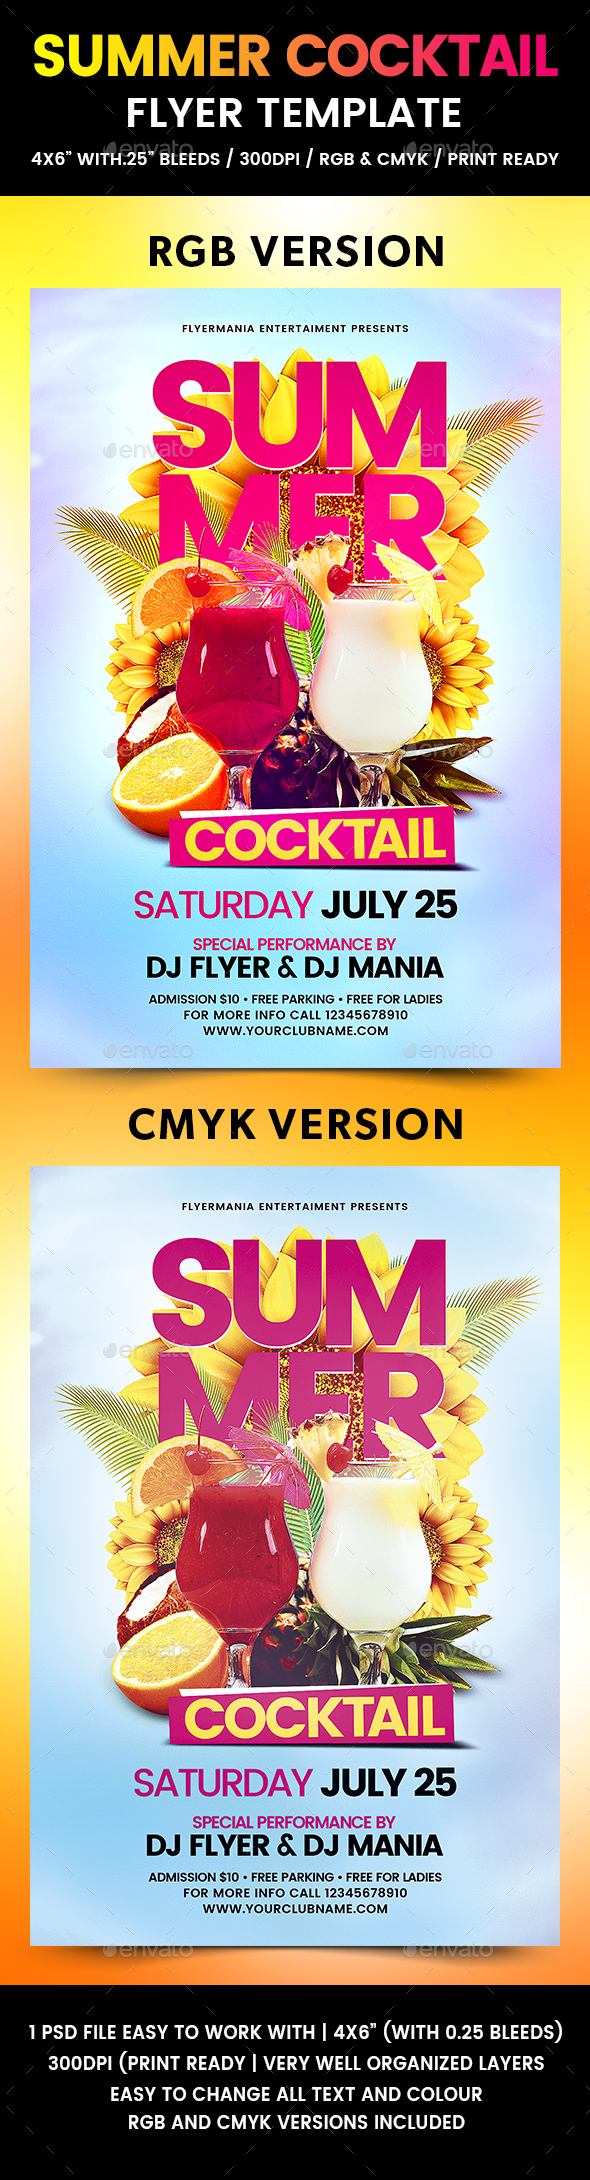 Summer Cocktail Flyer Template - Flyers Print Templates